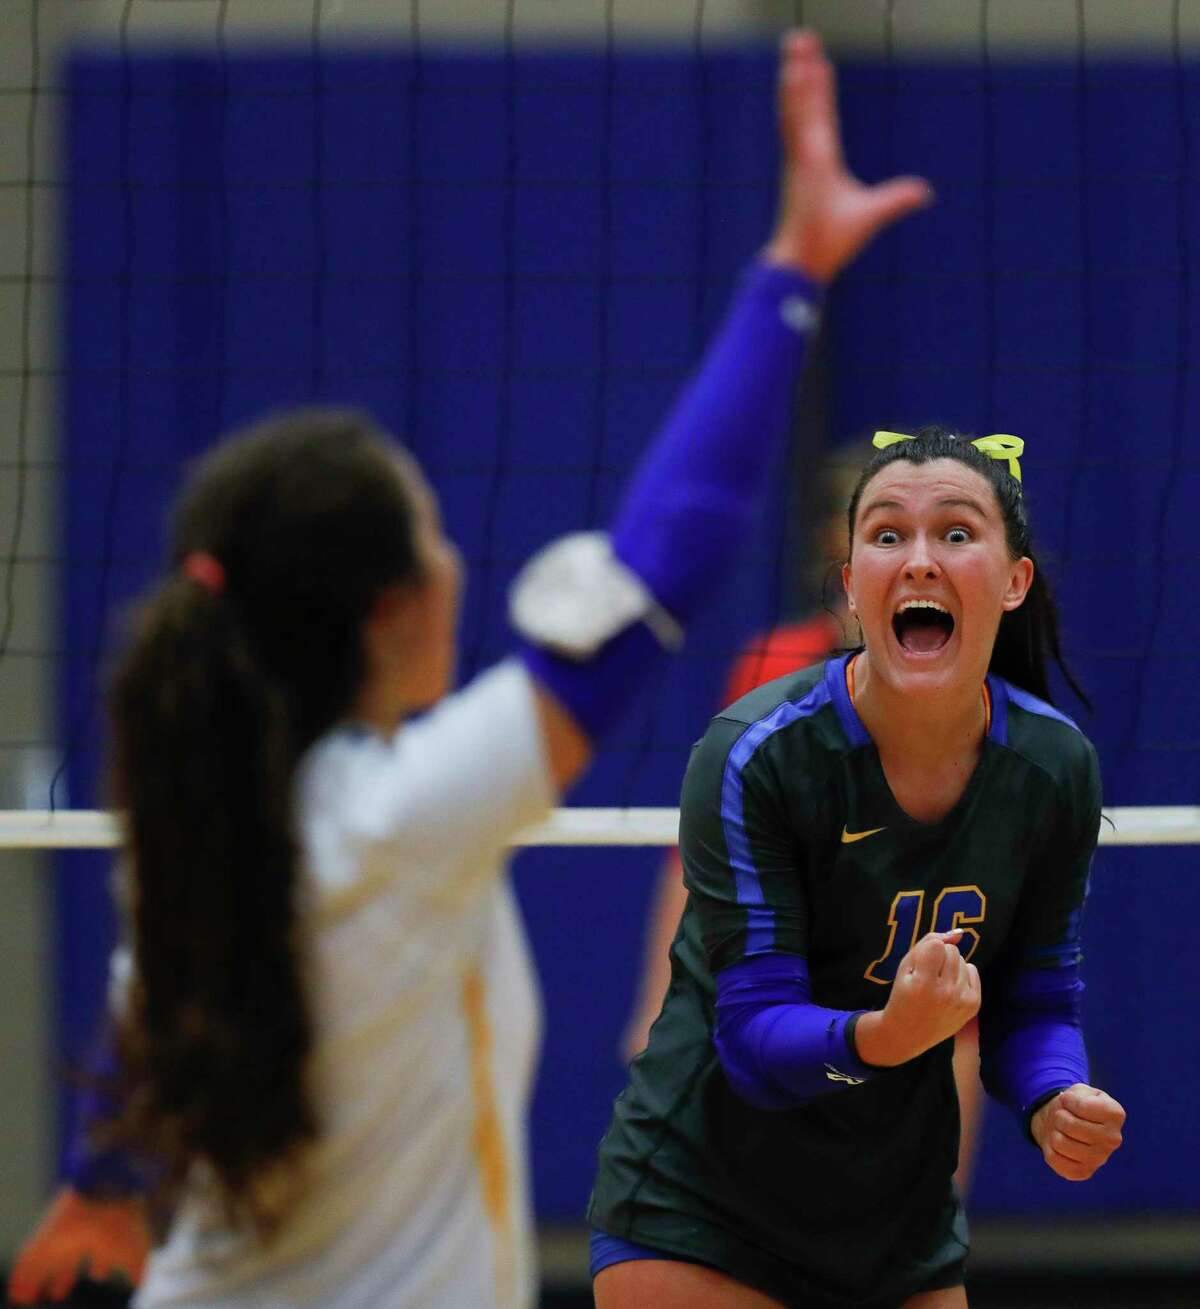 Klein outside hitter Devan Taylor (16) reacts after an ace by libero Gabriela Mansfield (6) during the second set of a non-district high school volleyball match at Klein High School, Saturday, Oct. 10, 2020, in Spring.